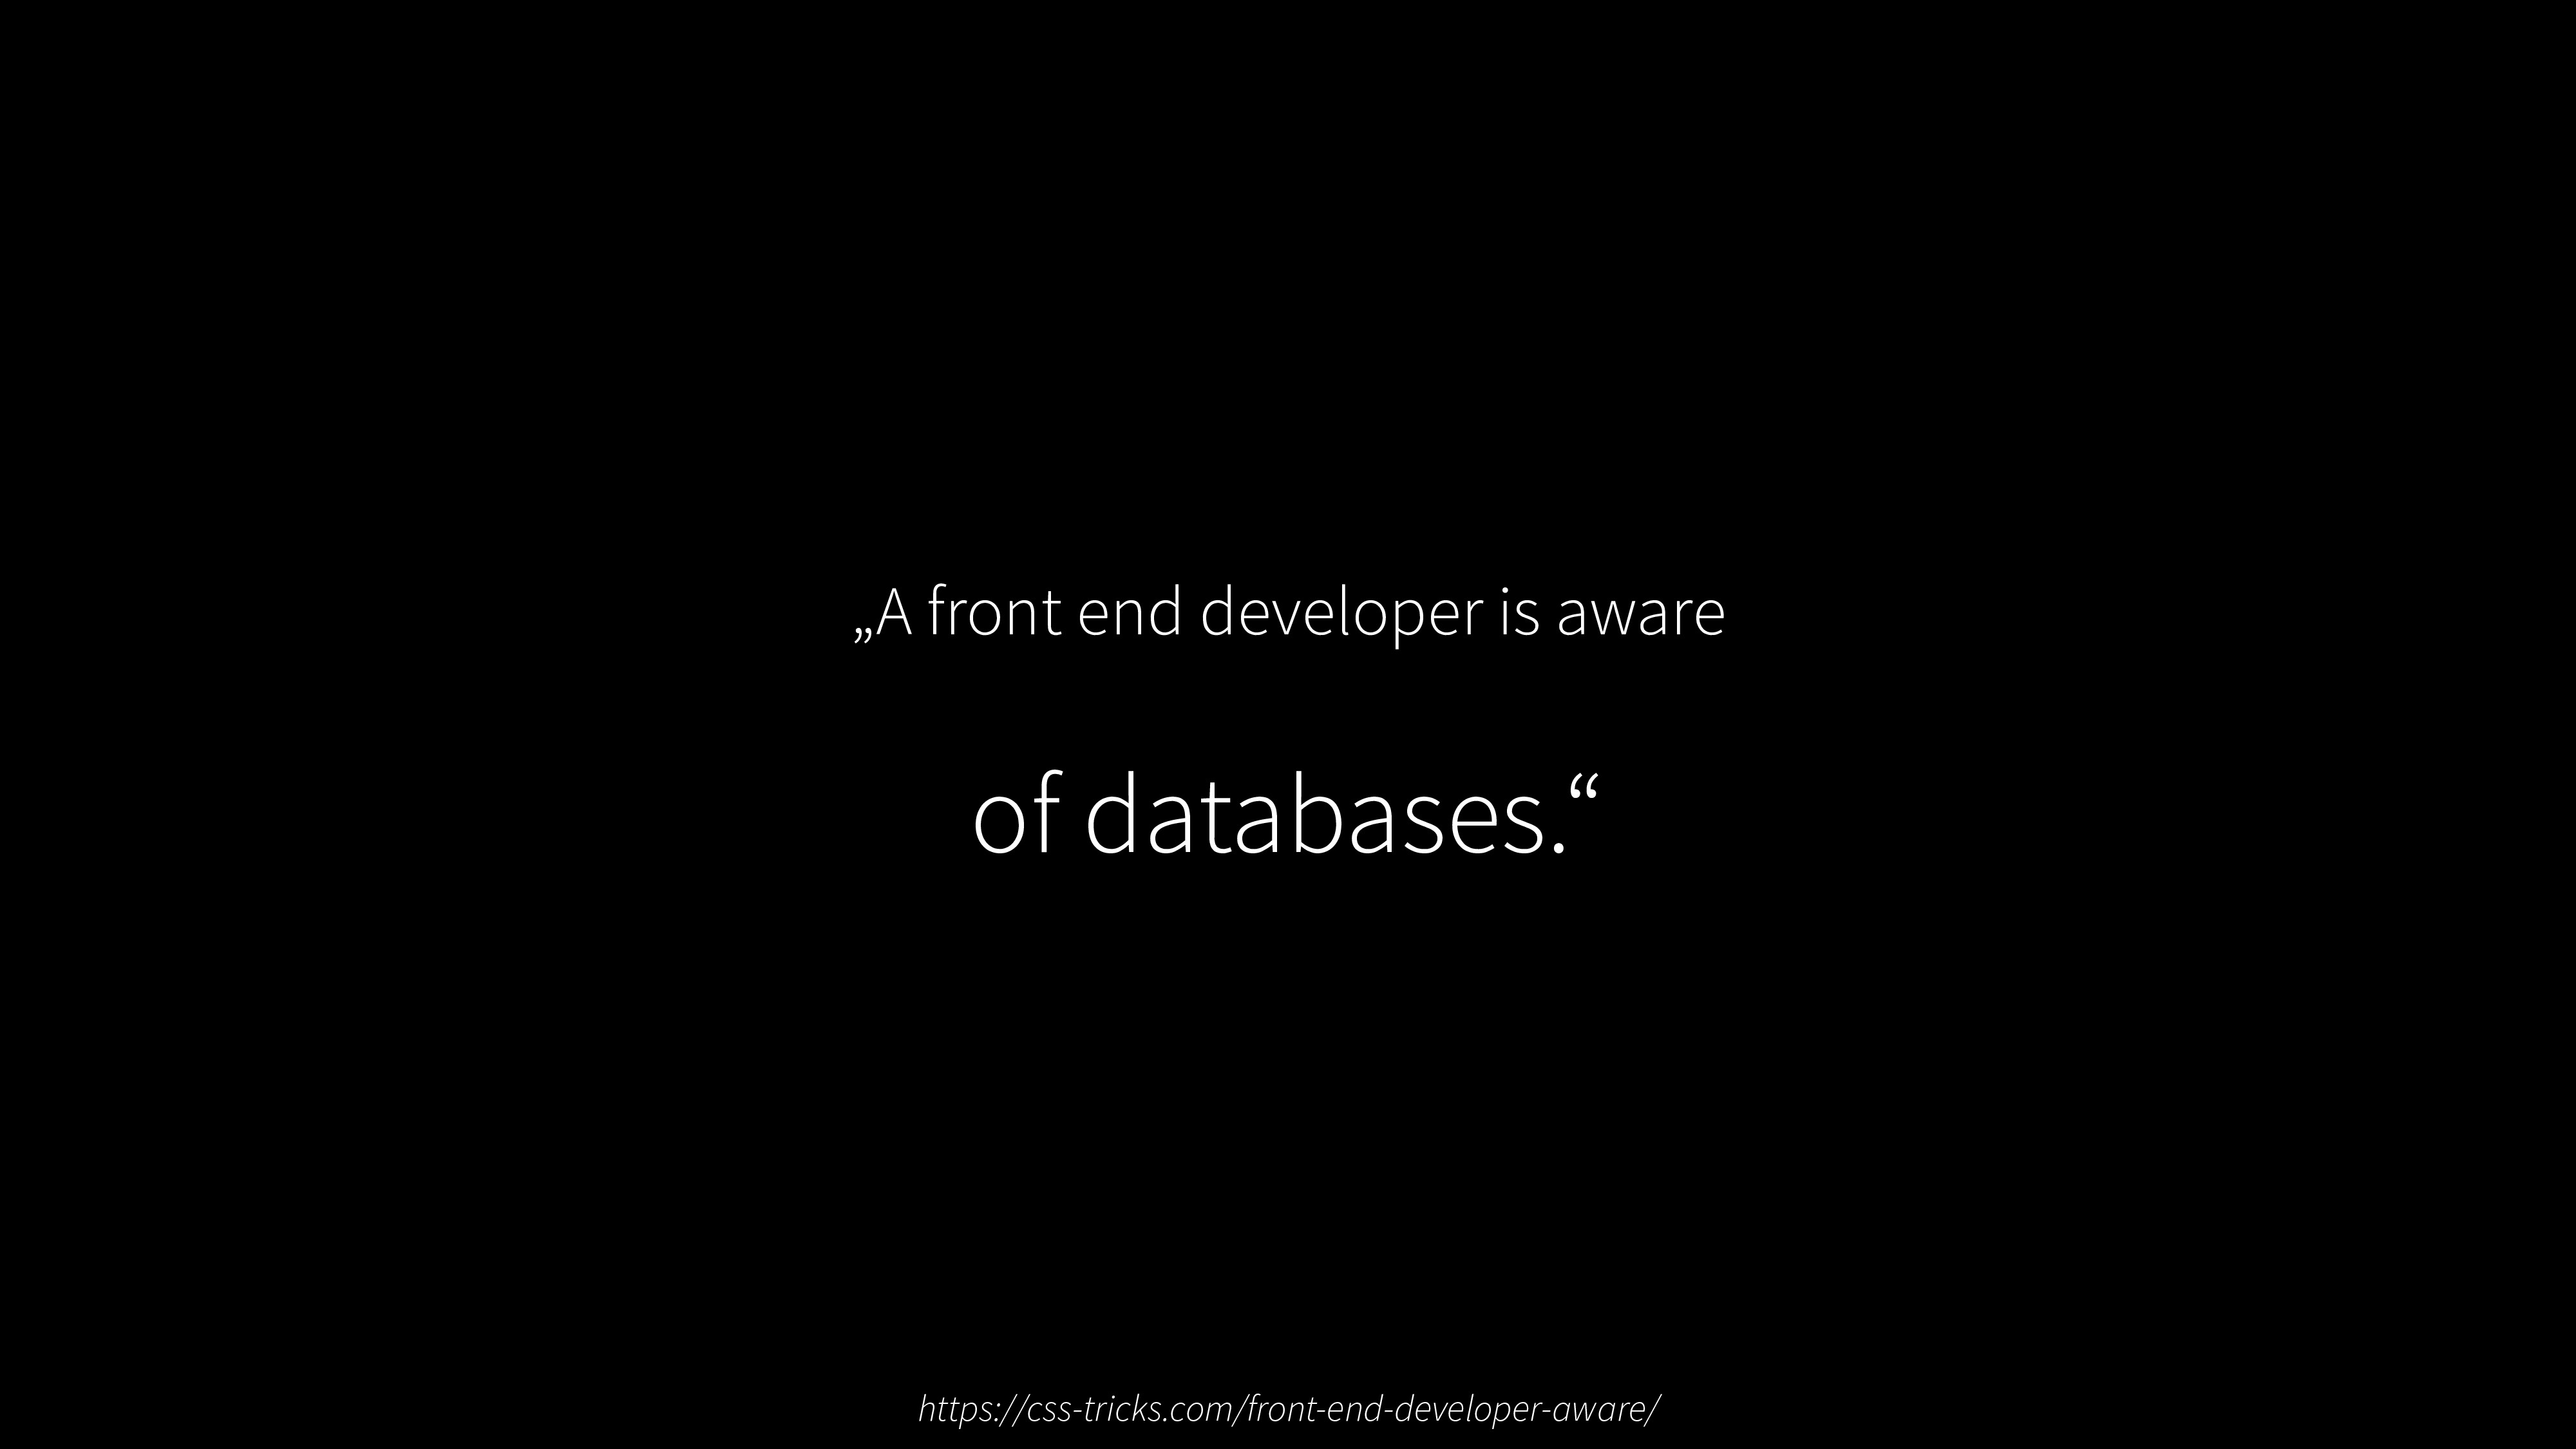 """A front end developer is aware of databases."" ..."